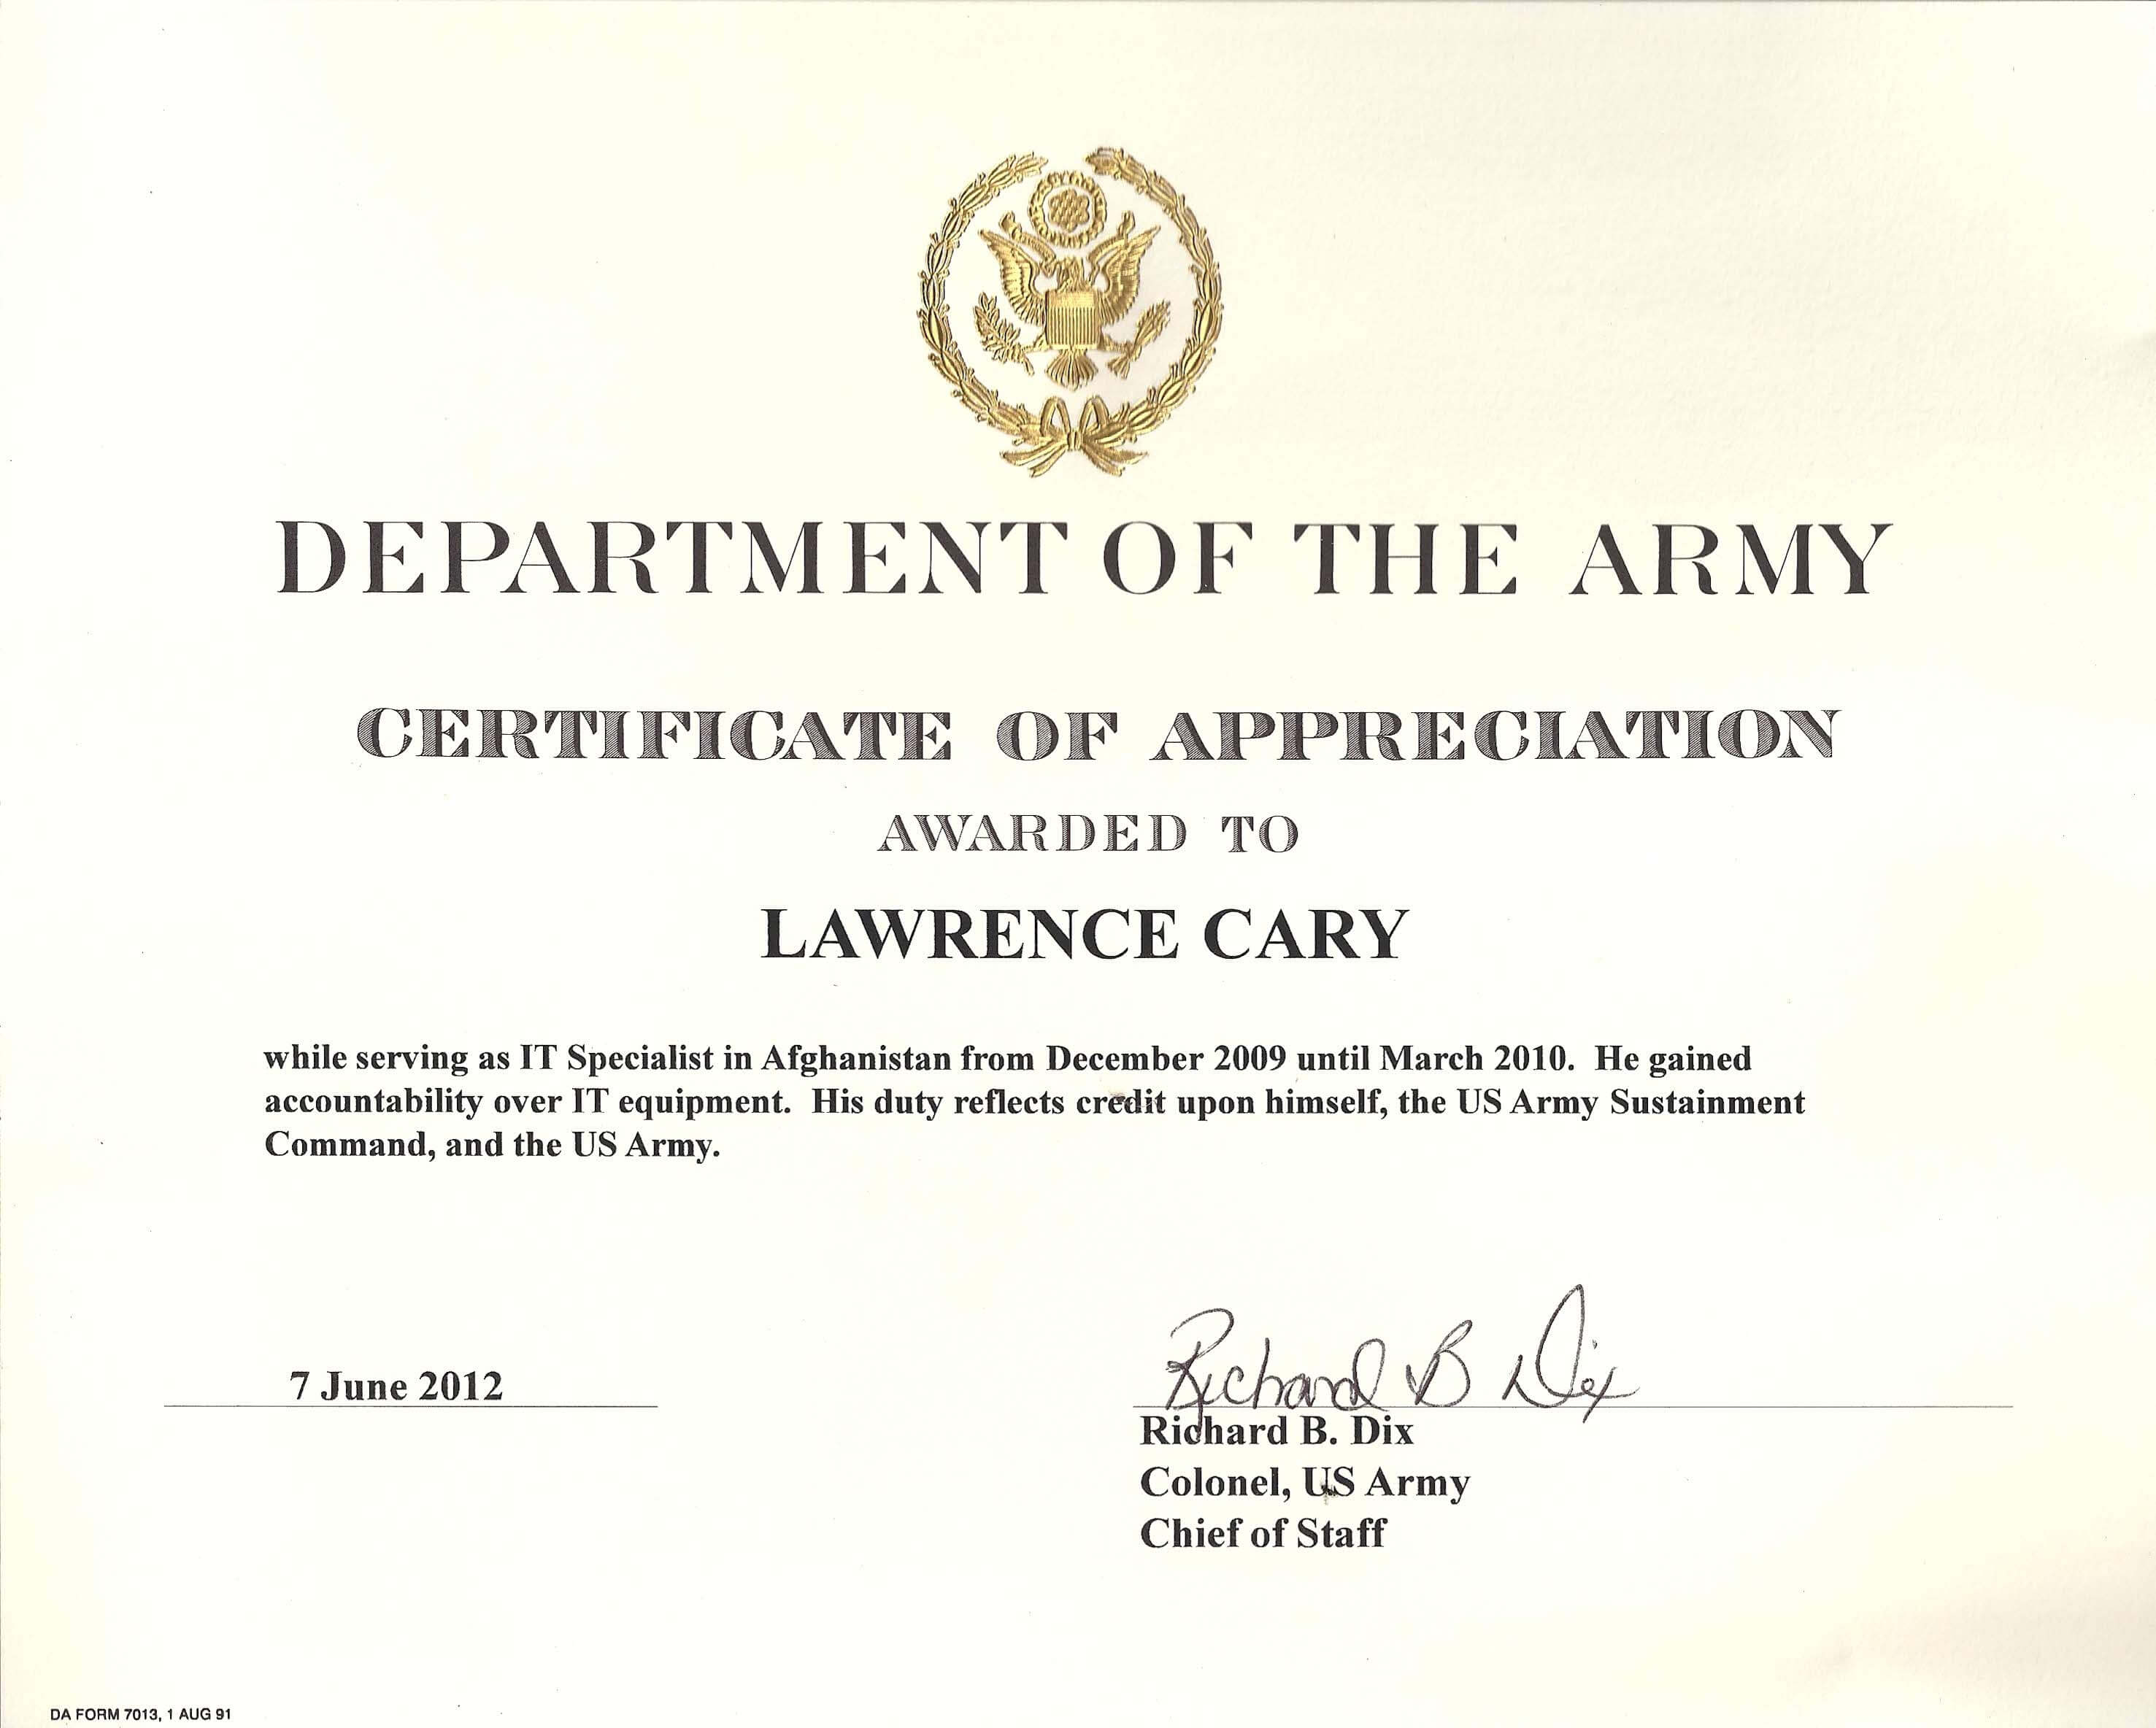 Army Certificate Of Completion Template – Atlantaauctionco For Army Certificate Of Completion Template